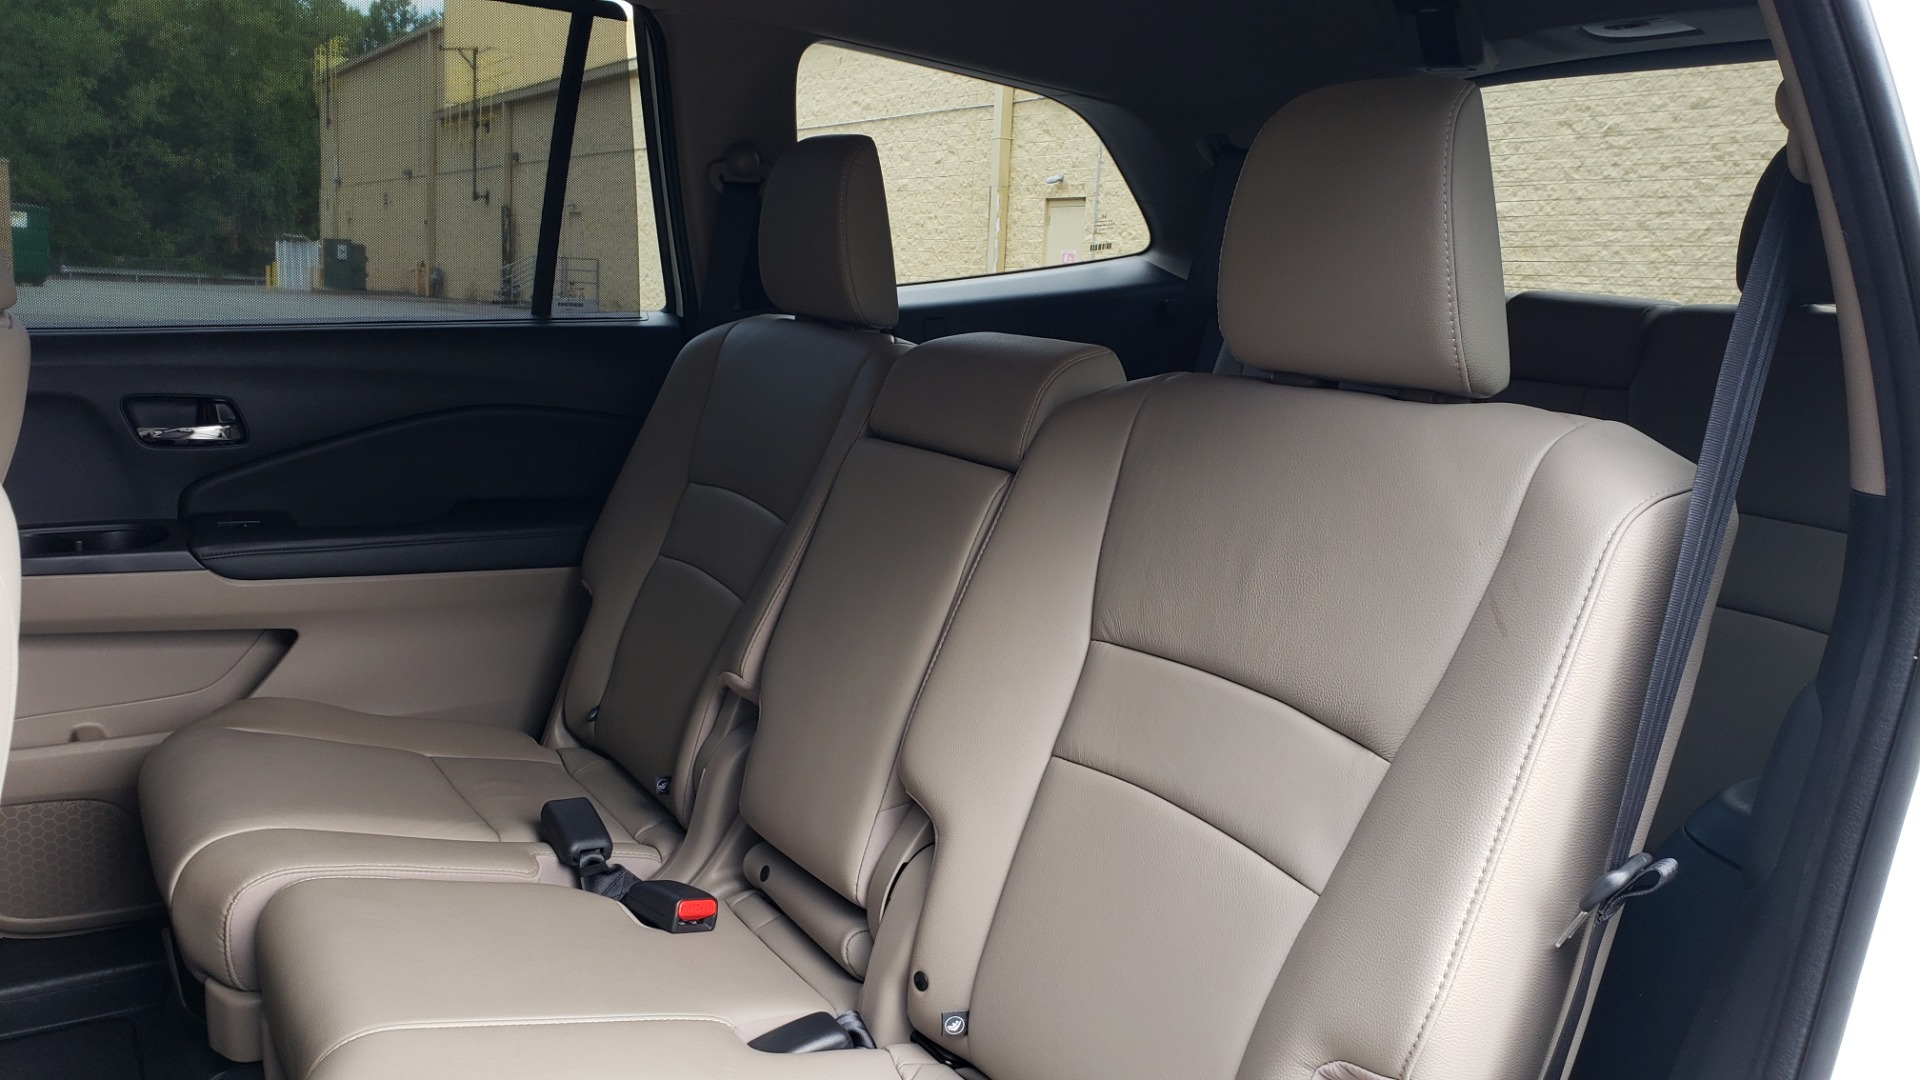 Used 2019 Honda PILOT EX-L / V6 / NAV / SUNROOF / DVD / 3-ROW / REARVIEW for sale Sold at Formula Imports in Charlotte NC 28227 66